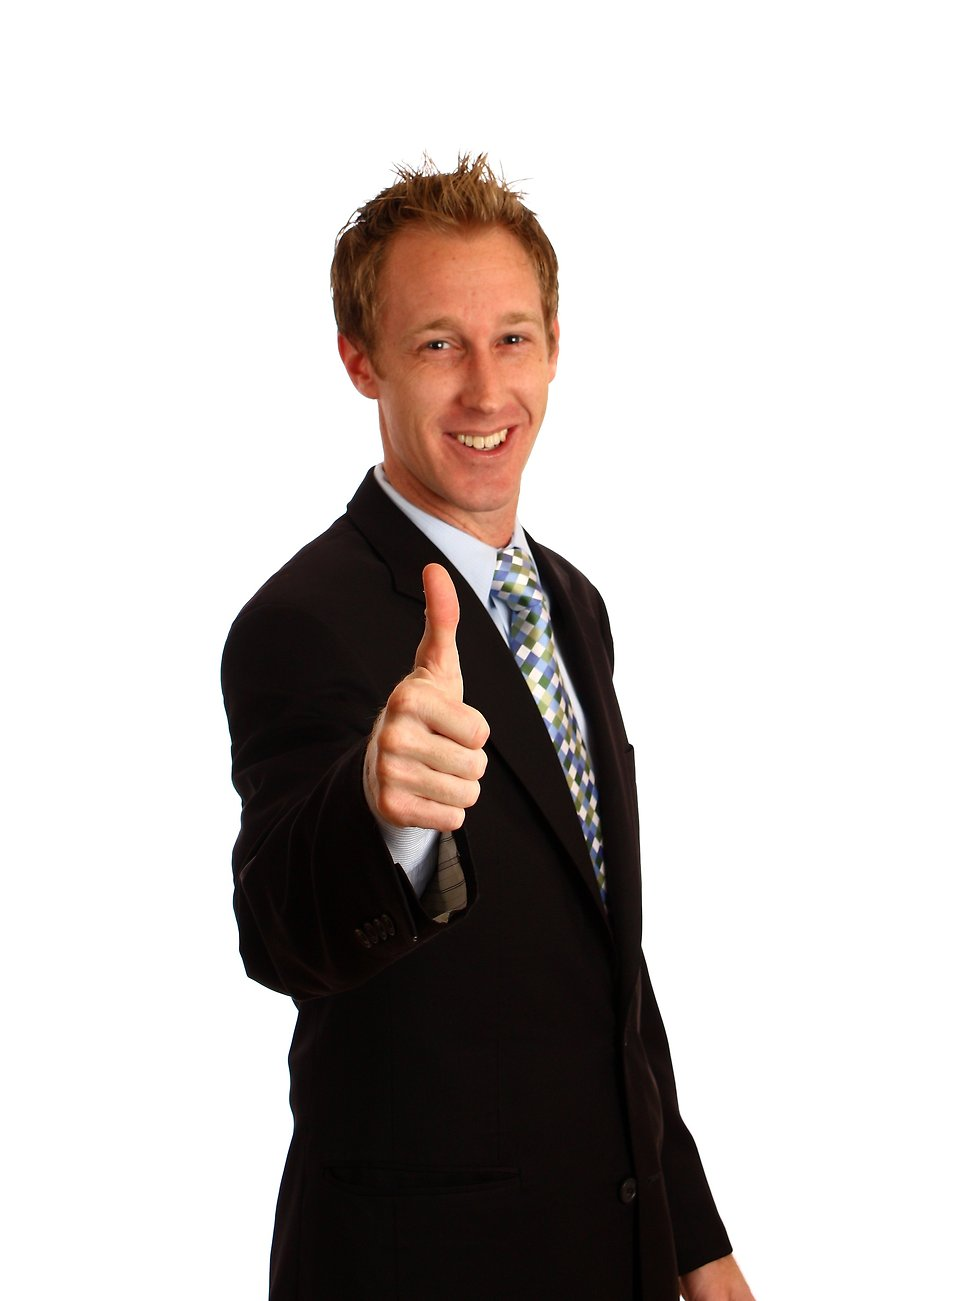 A young businessman giving a thumbs up signal.